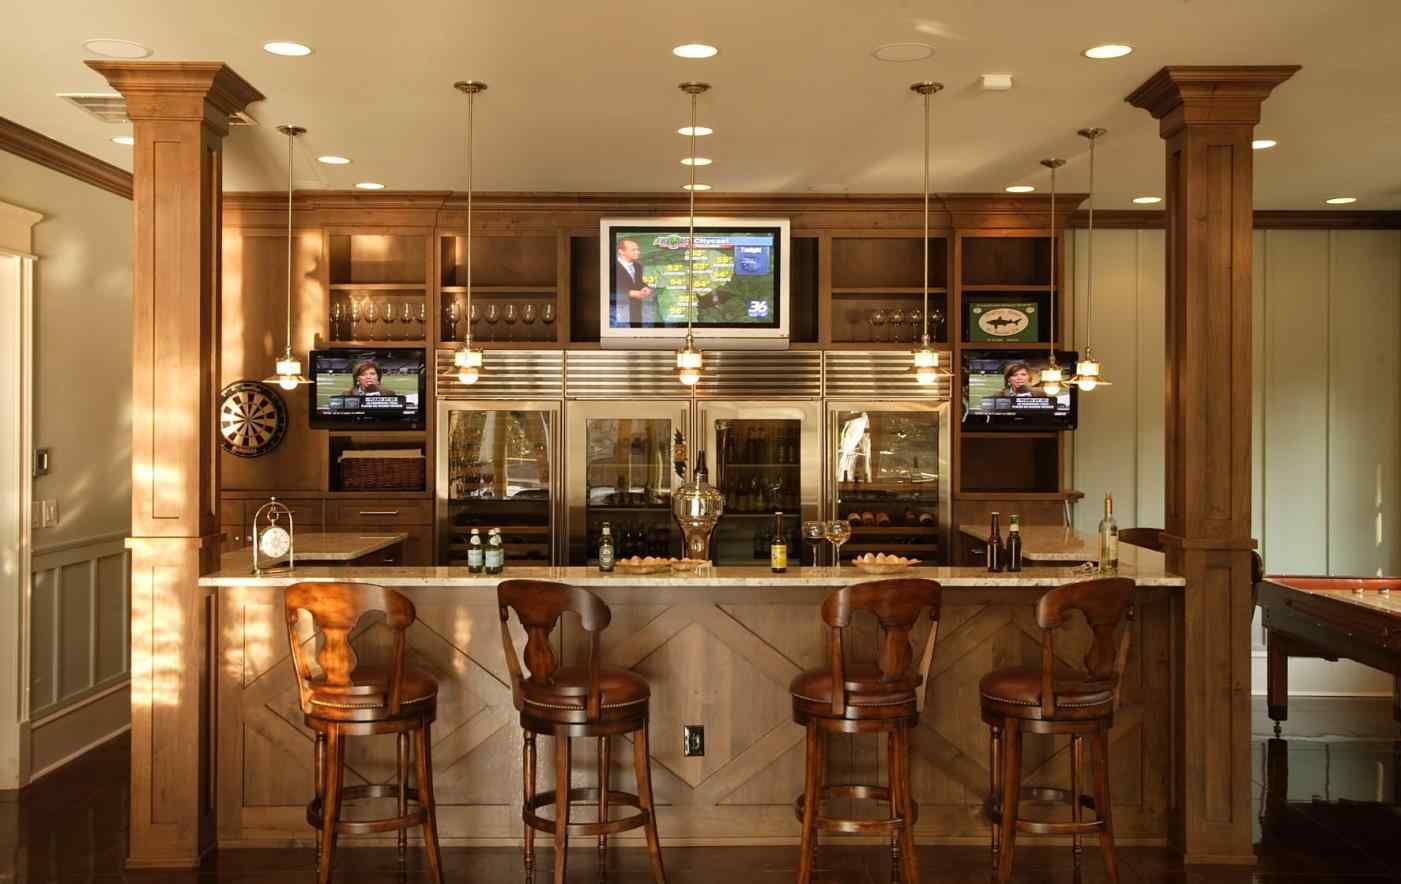 New simple home bar plans at 5k5.info | Kitchen ideas | Pinterest ...